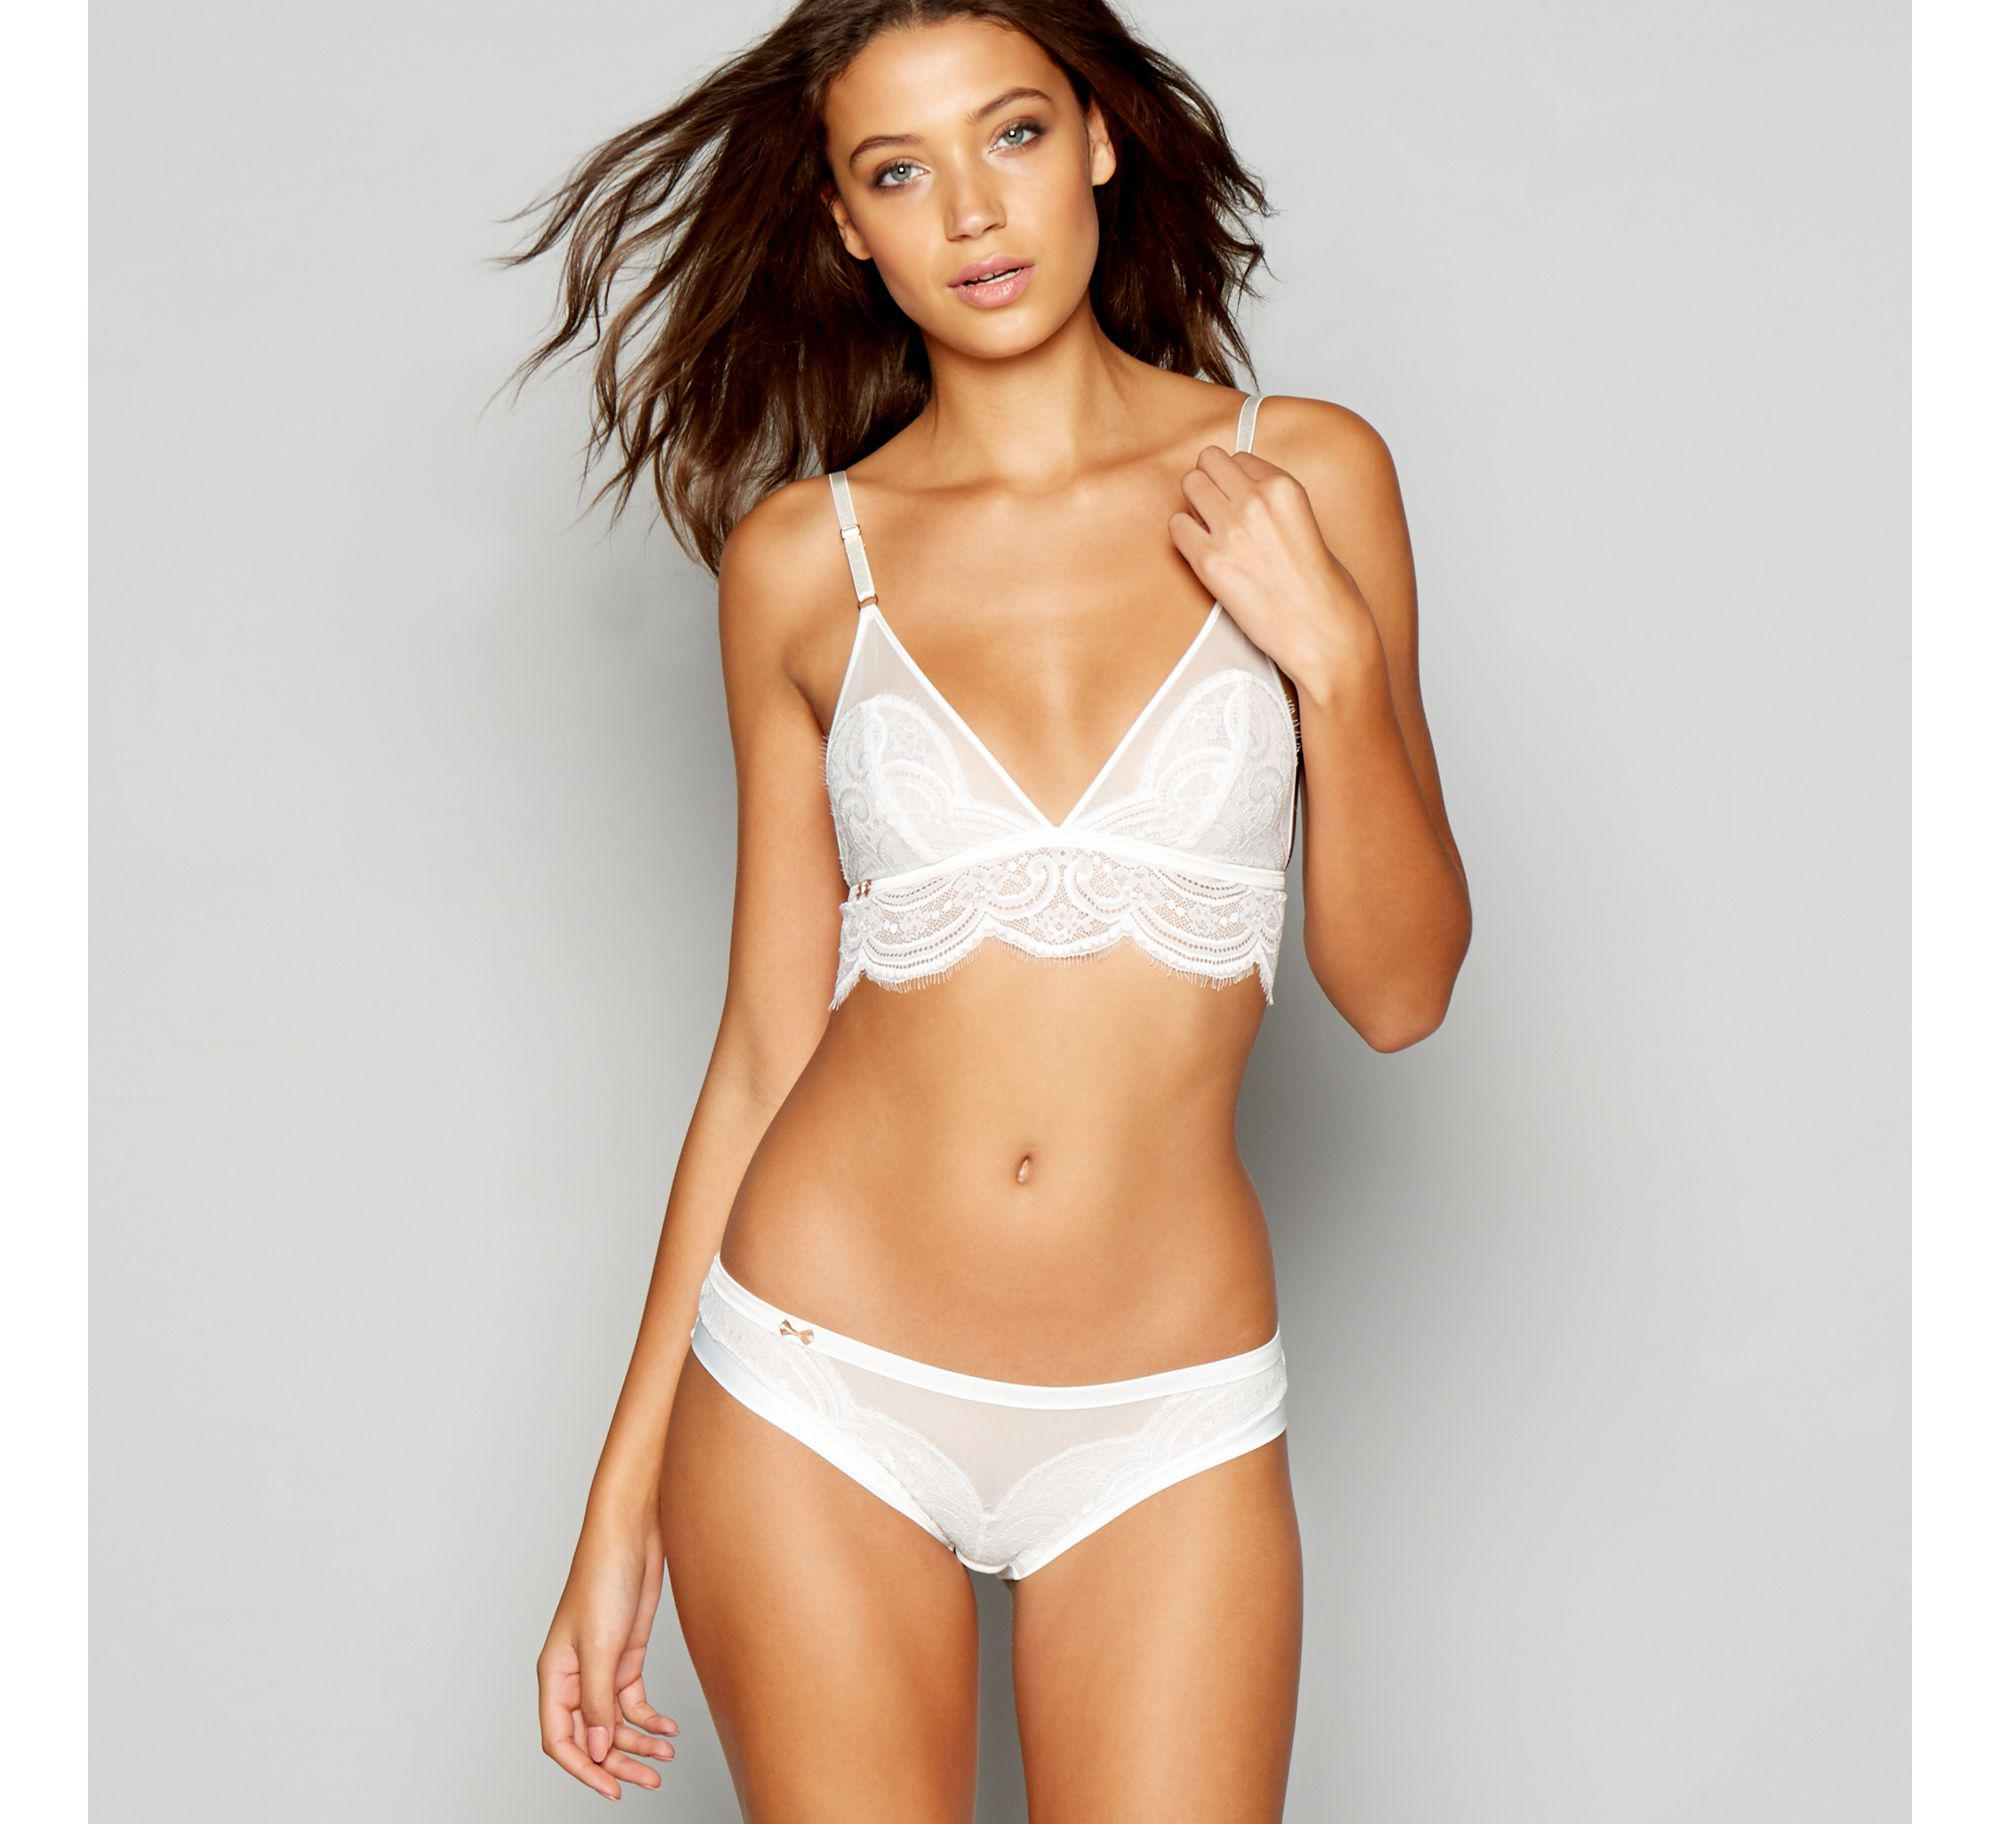 94e3d6ed20b86d Ted Baker White Lace Non-wired Non-padded Bralette in White - Lyst